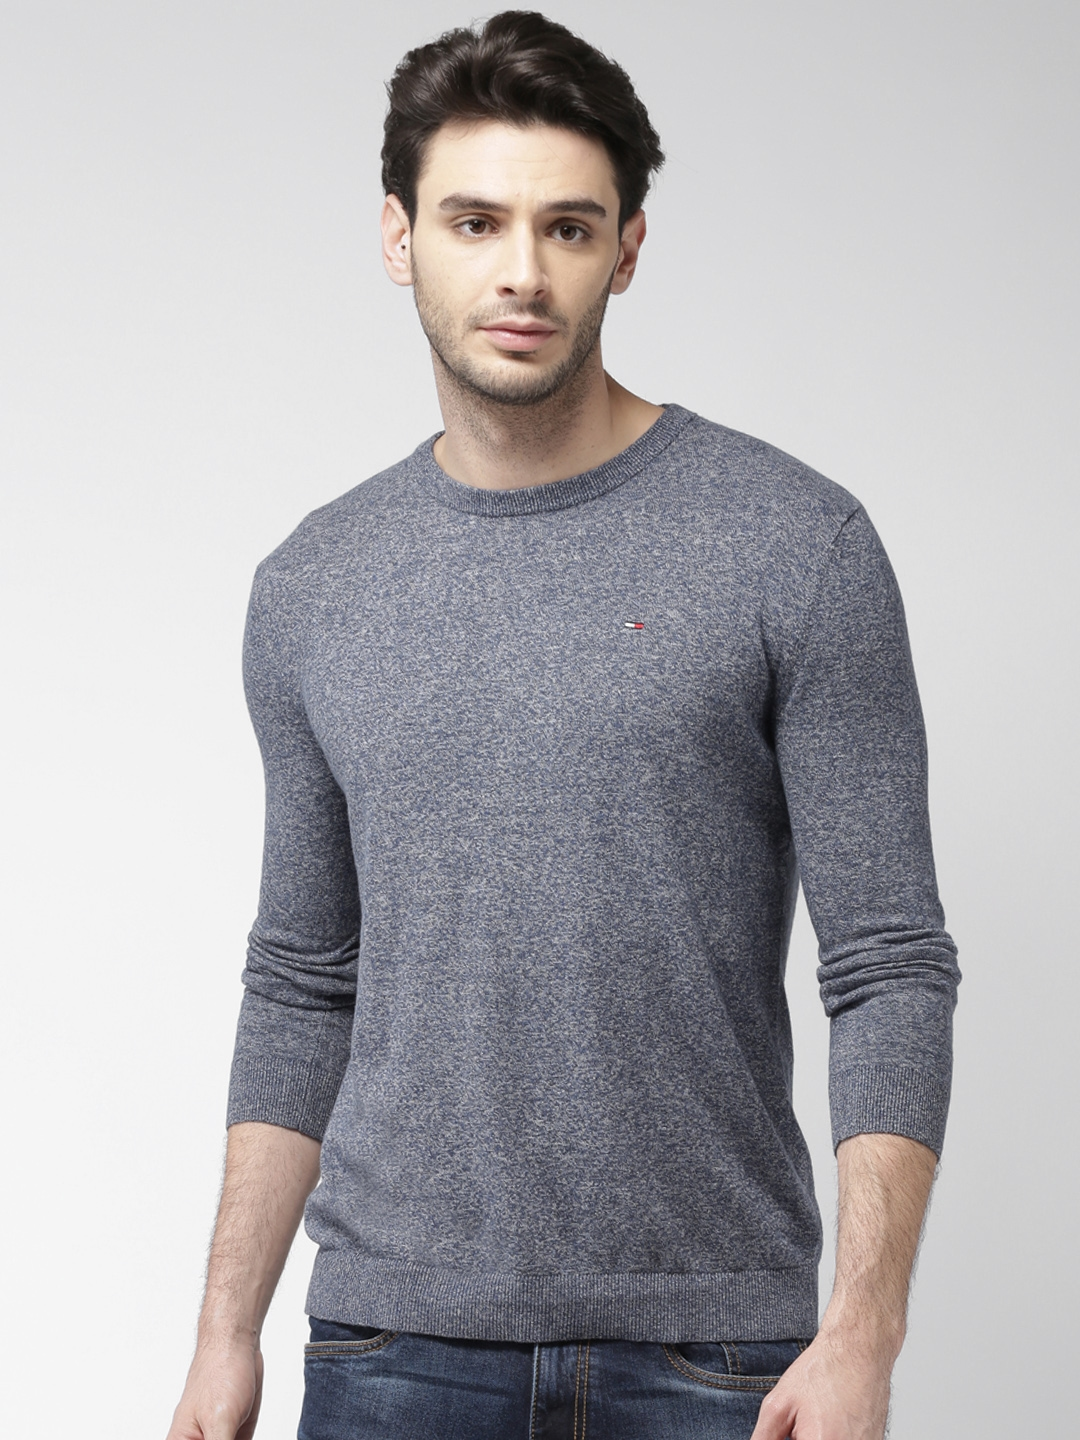 Buy Tommy Hilfiger Men Navy Blue Solid Pullover - Sweaters for Men ... 26d10483a6